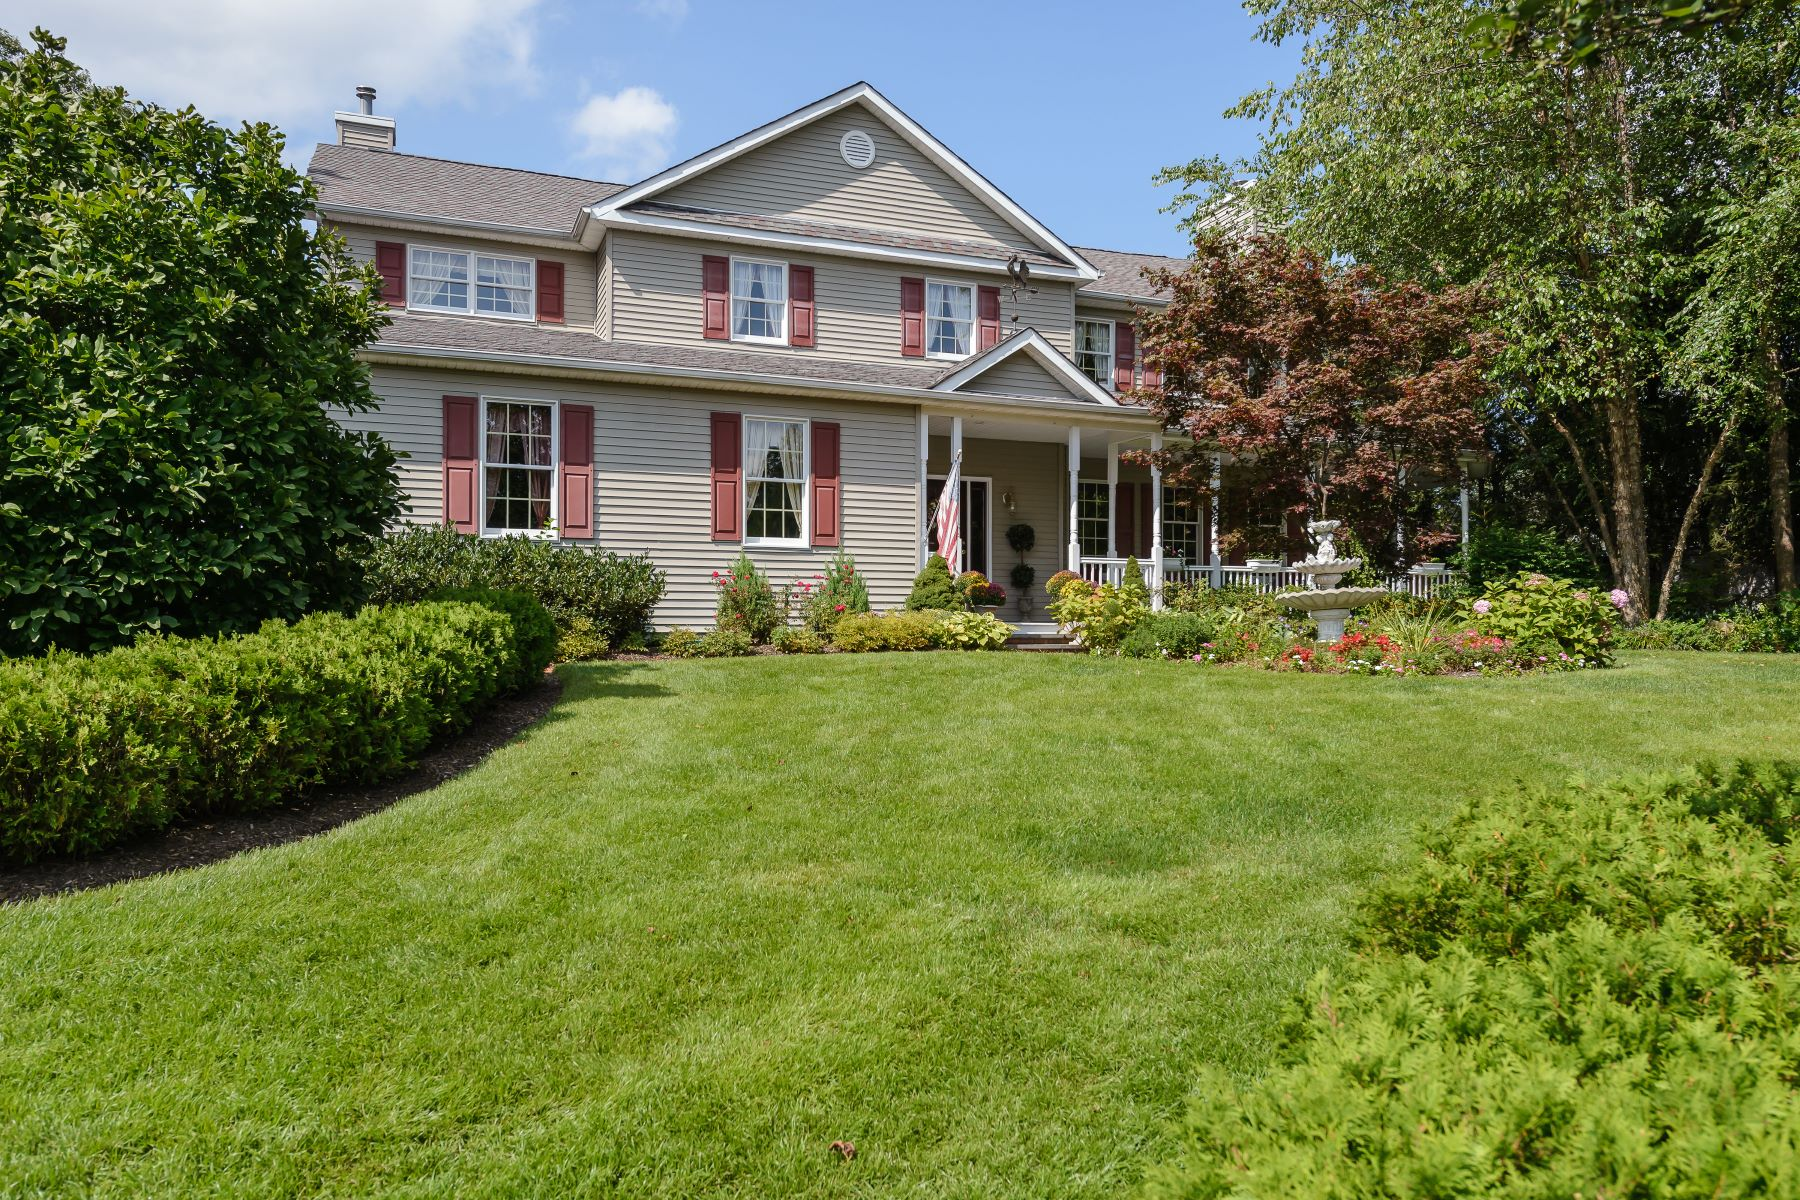 واحد منزل الأسرة للـ Sale في 8 Alex Ct , Lake Grove, NY 11755 8 Alex Ct Lake Grove, New York, 11755 United States